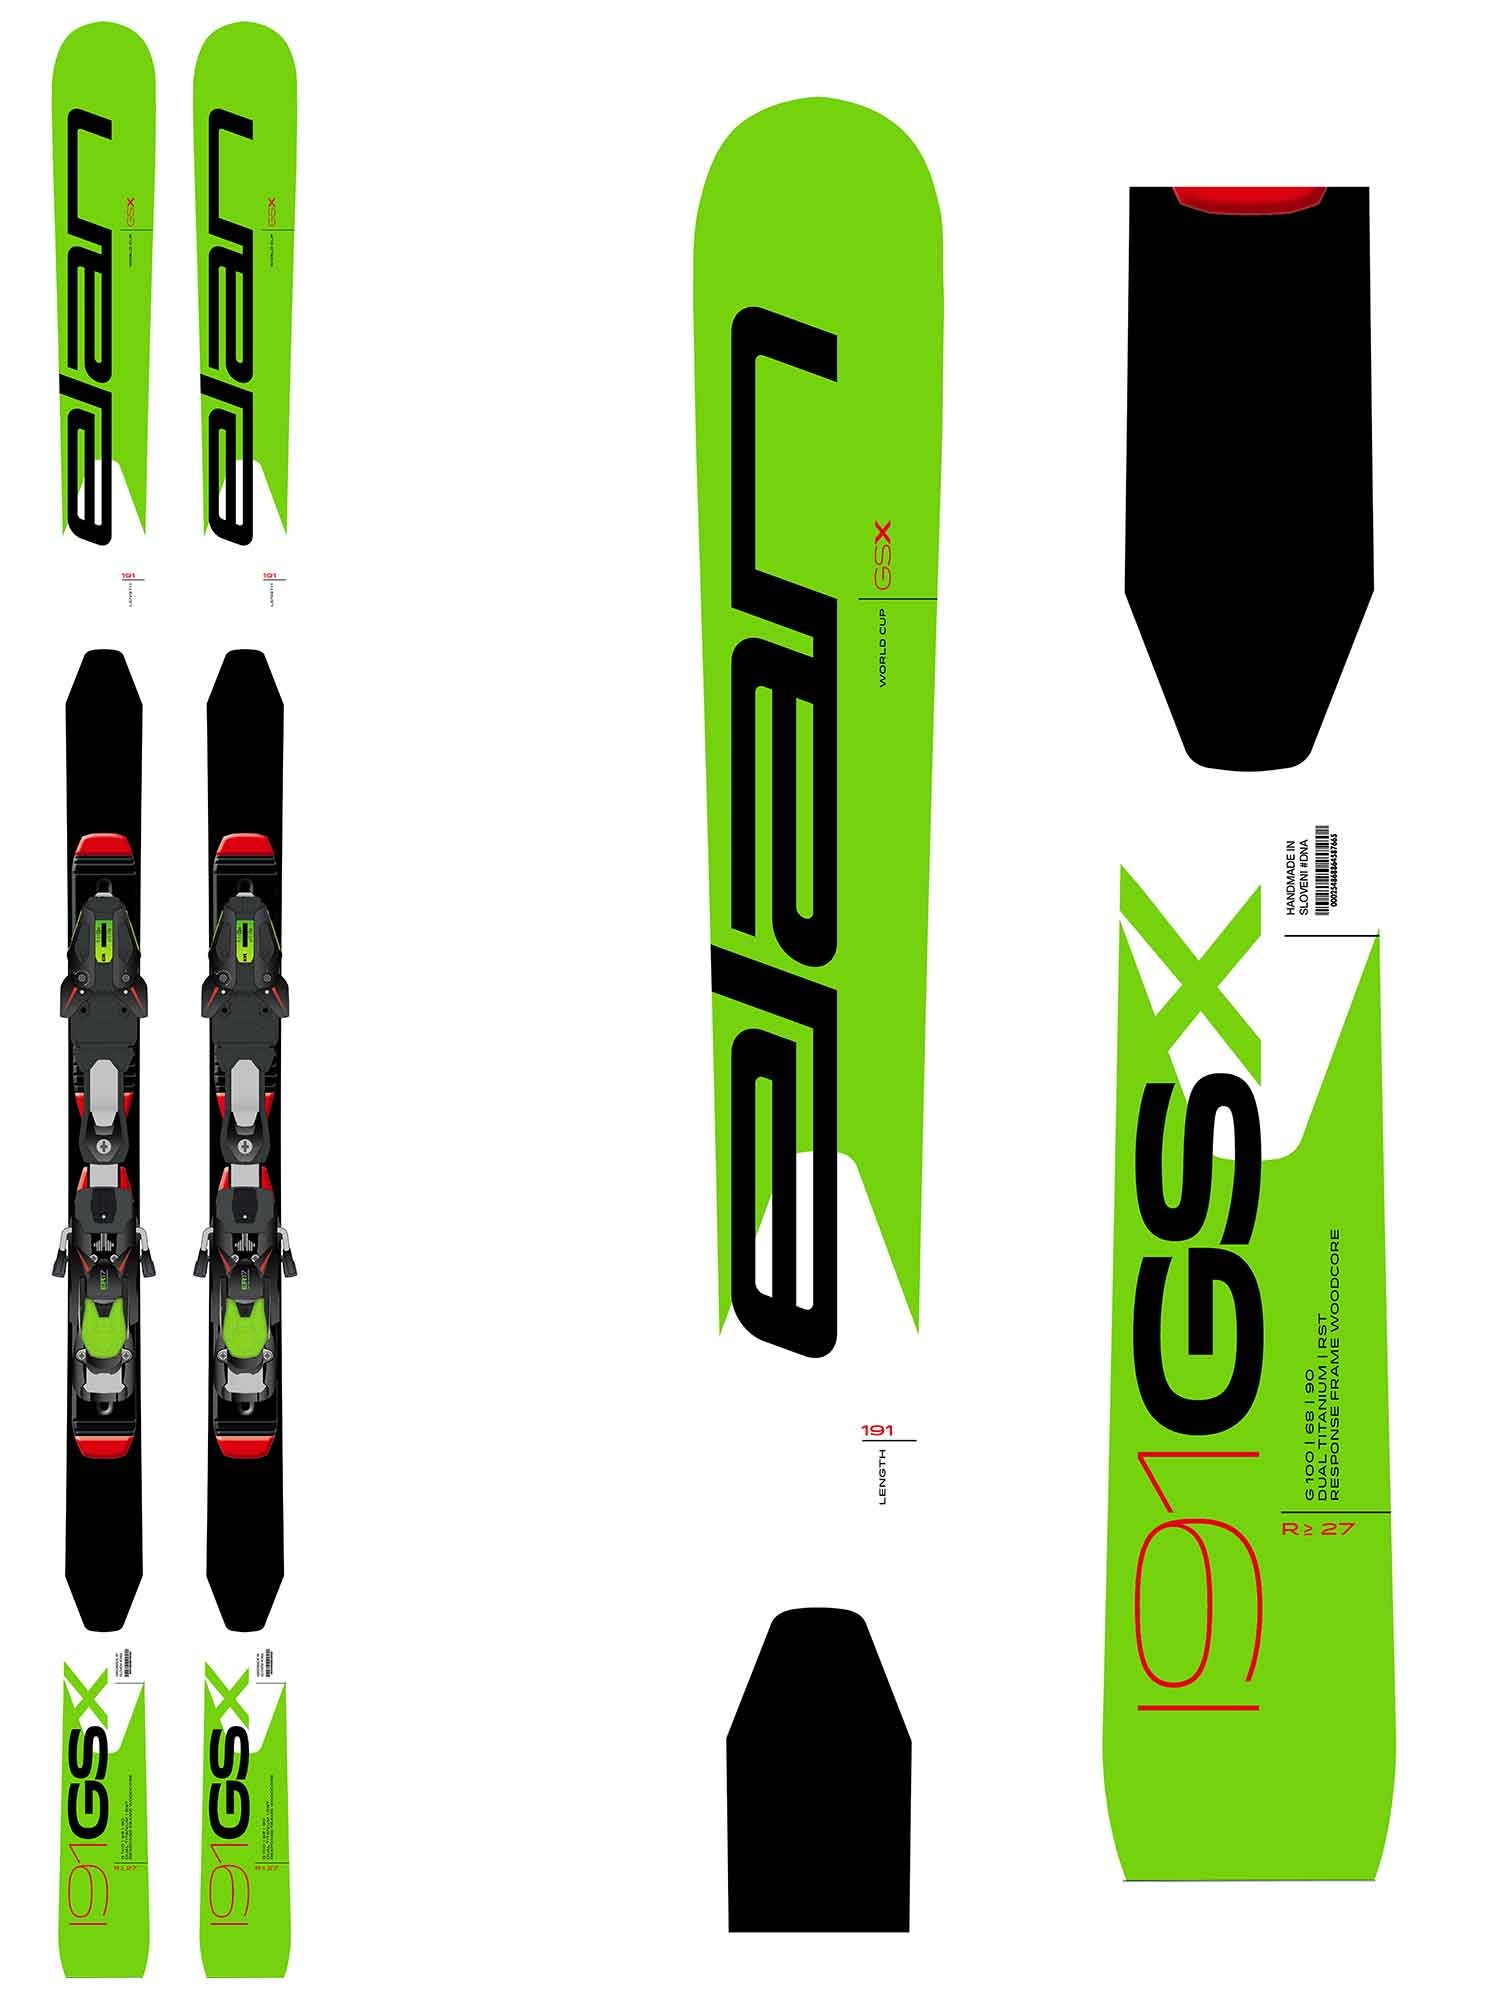 Elan GSX World Cup X Plate - for Ski Cross, Masters, 2019